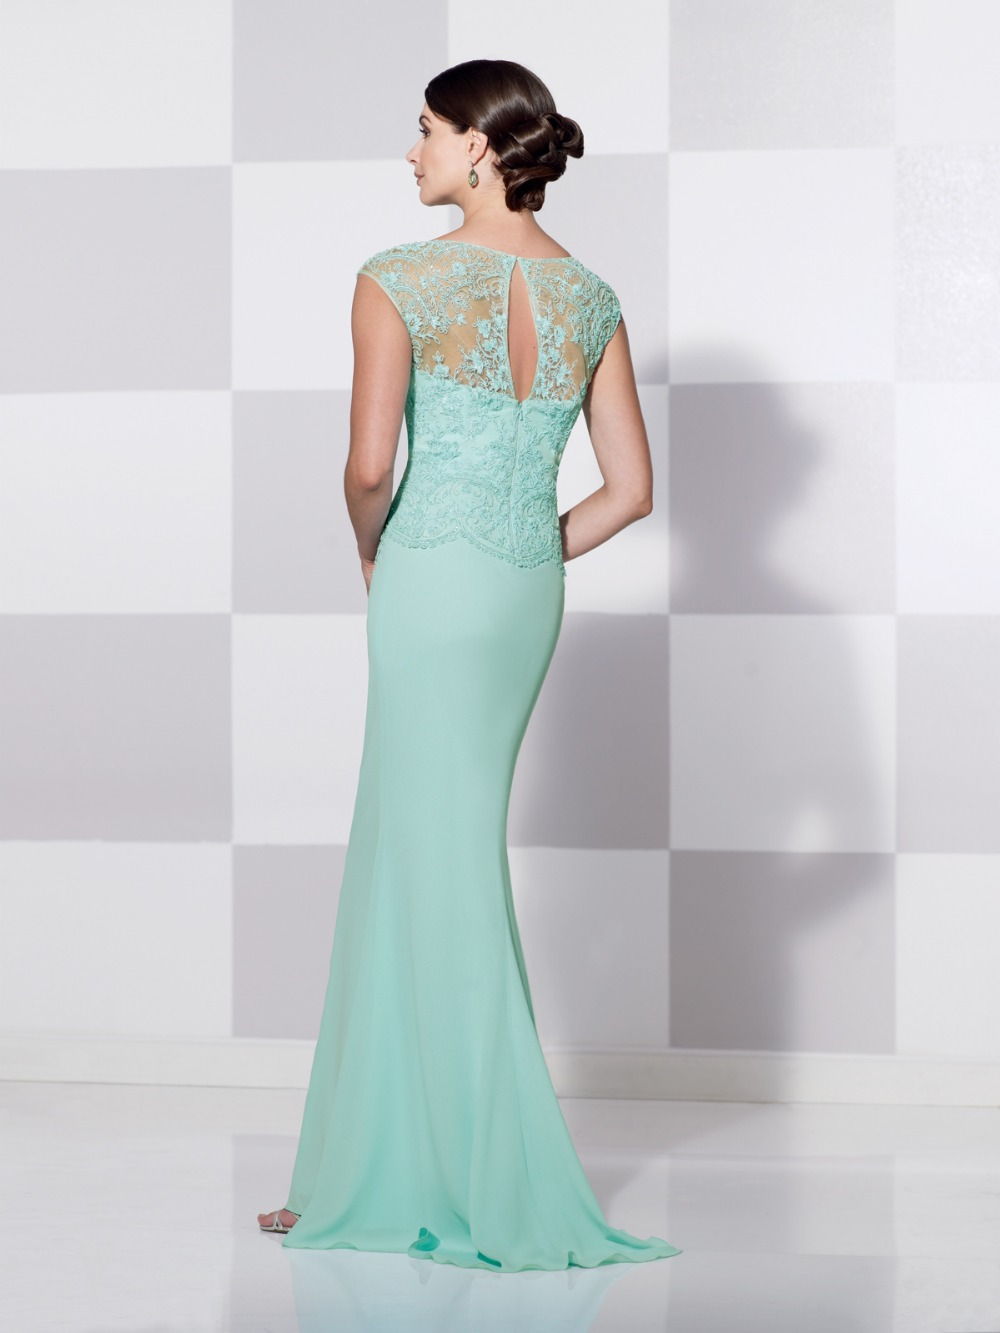 Fine Mother Of The Bride Dresses Usa Image - Womens Dresses & Gowns ...